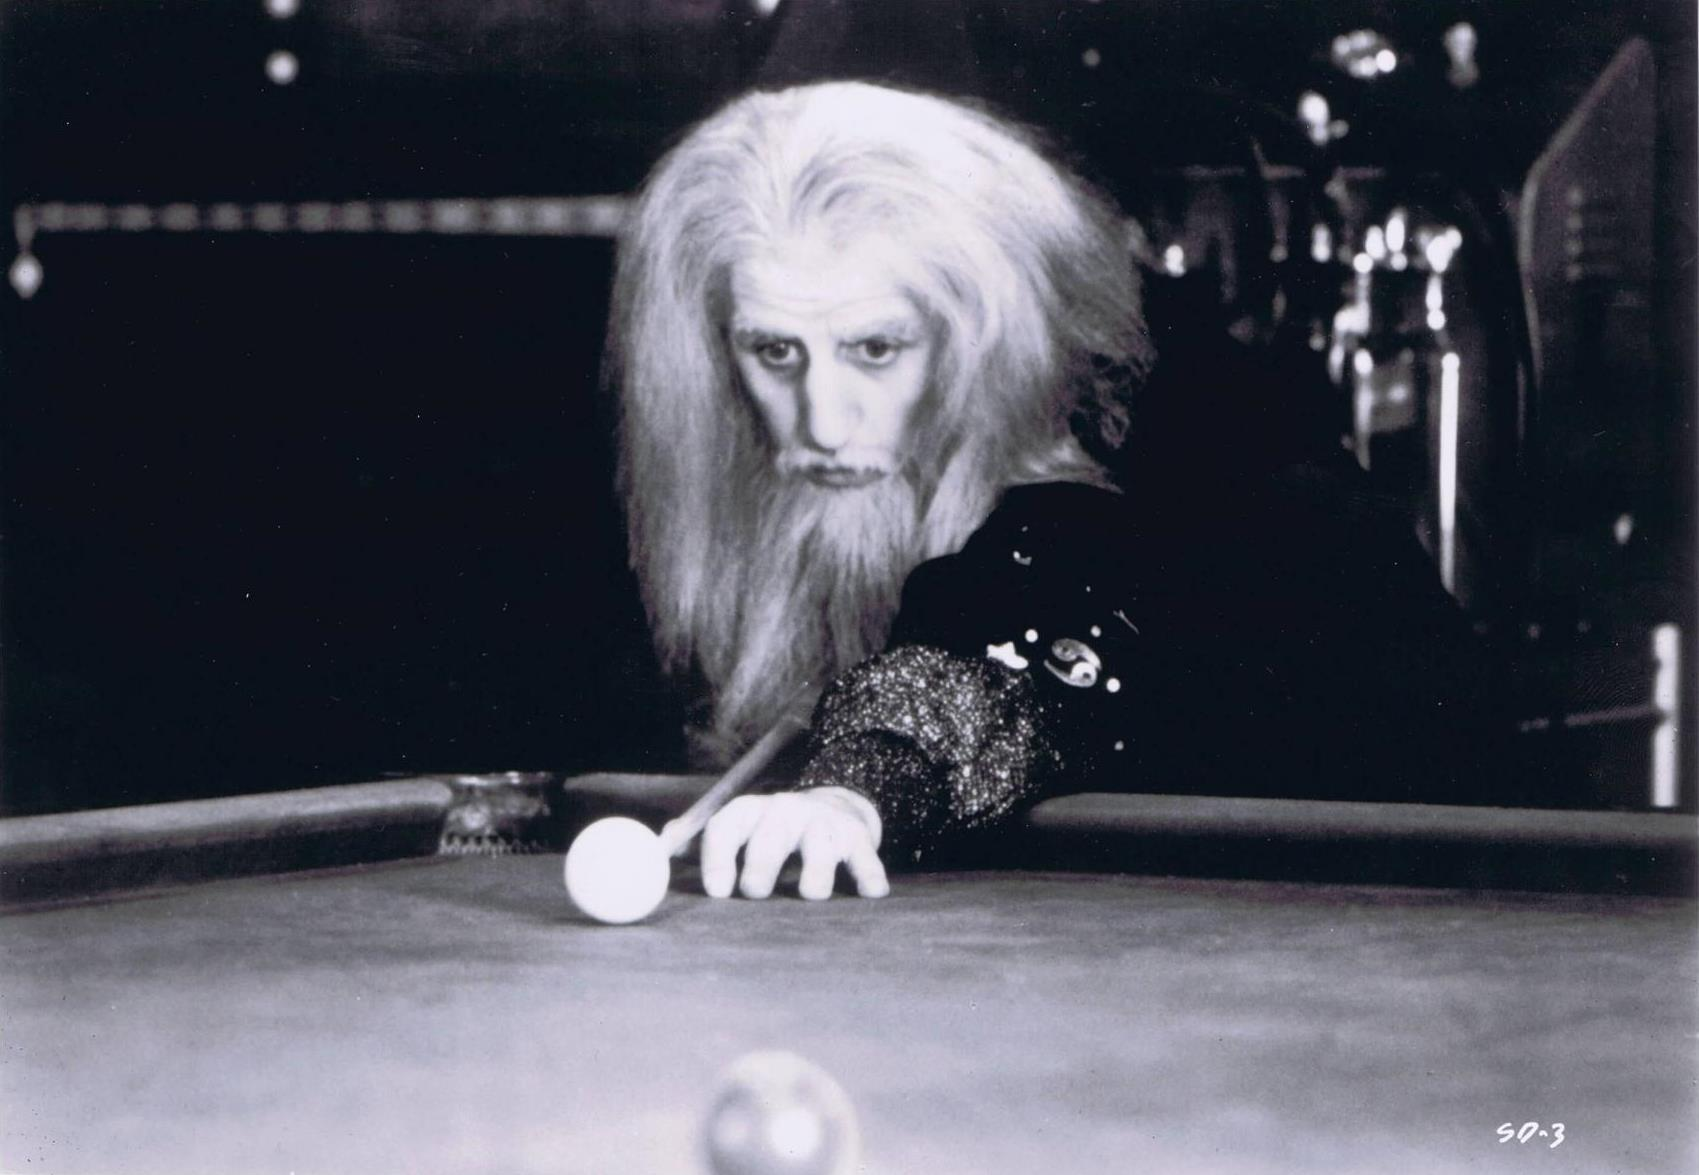 Ringo Starr (also the films producer) as a pool-playing Merlin the Magician in Son of Dracula (1974)